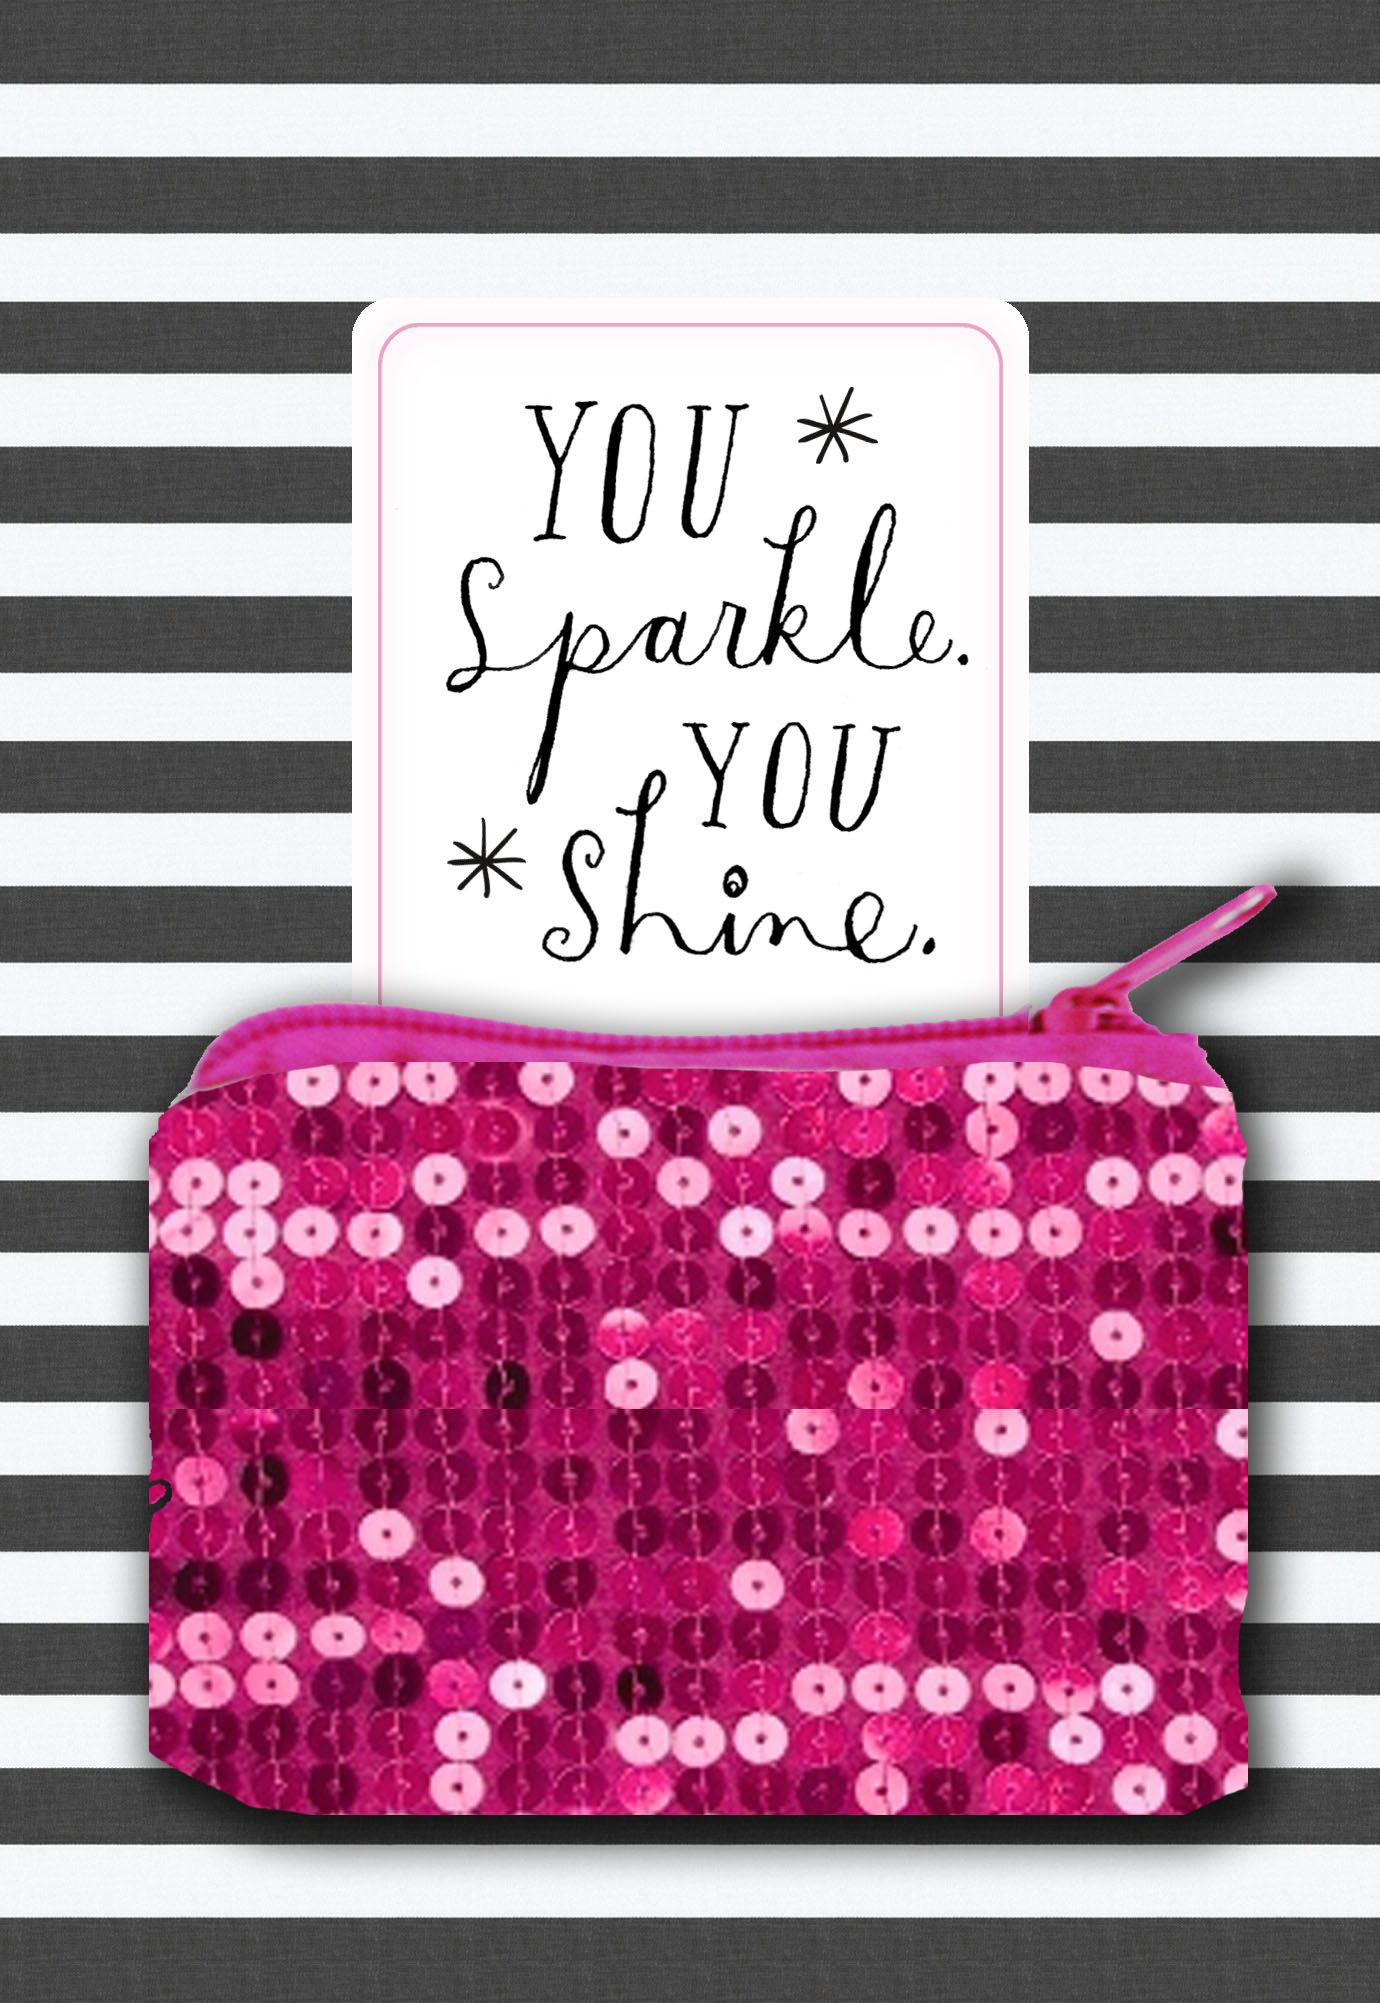 This beautiful card comes with a glittery pink coin purse for a this beautiful card comes with a glittery pink coin purse for a lady to hide her secrets signaturestyle pinterest coins and cards kristyandbryce Image collections